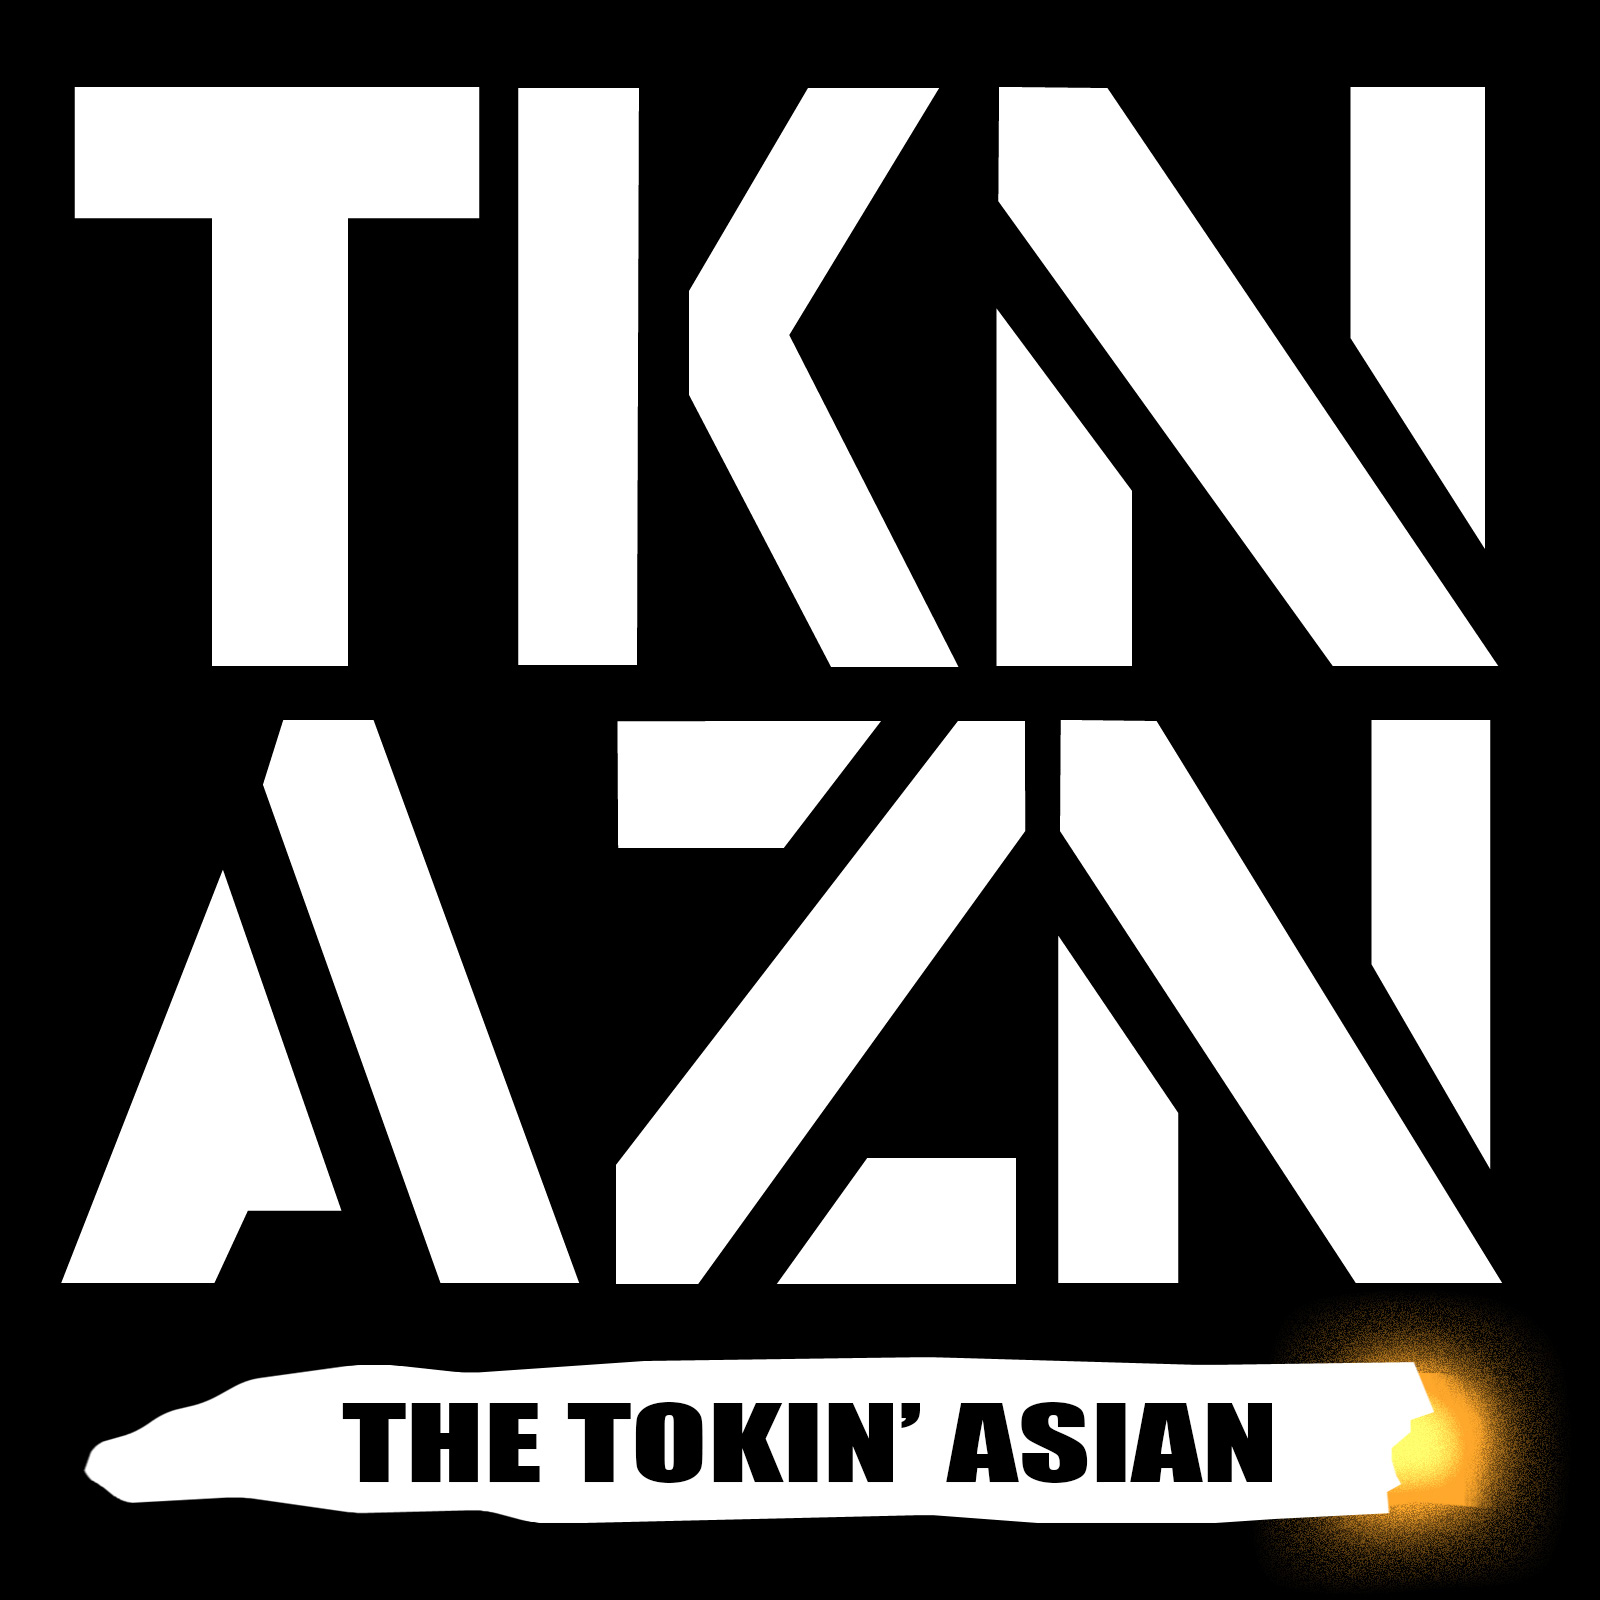 THE TOKIN' ASIAN